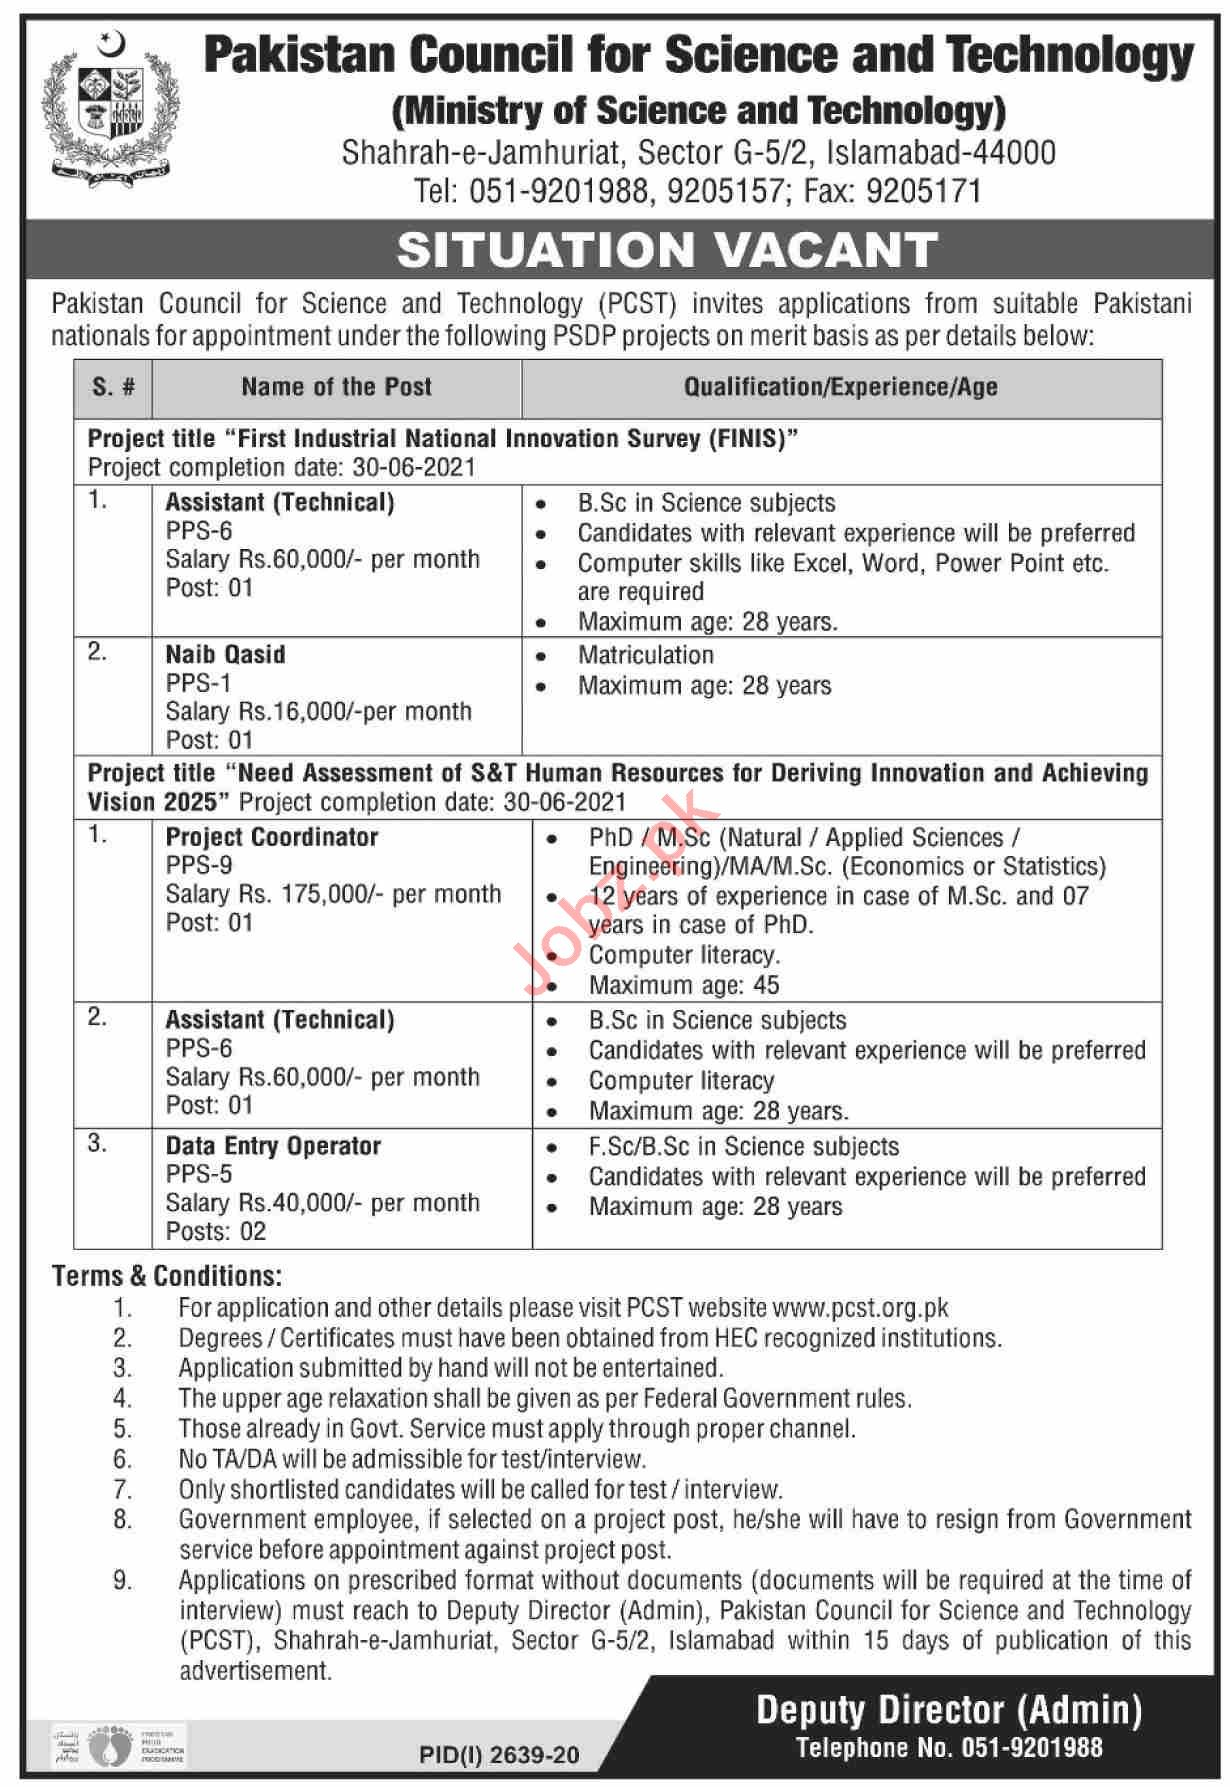 Pakistan Council for Science & Technology Jobs for Assistant